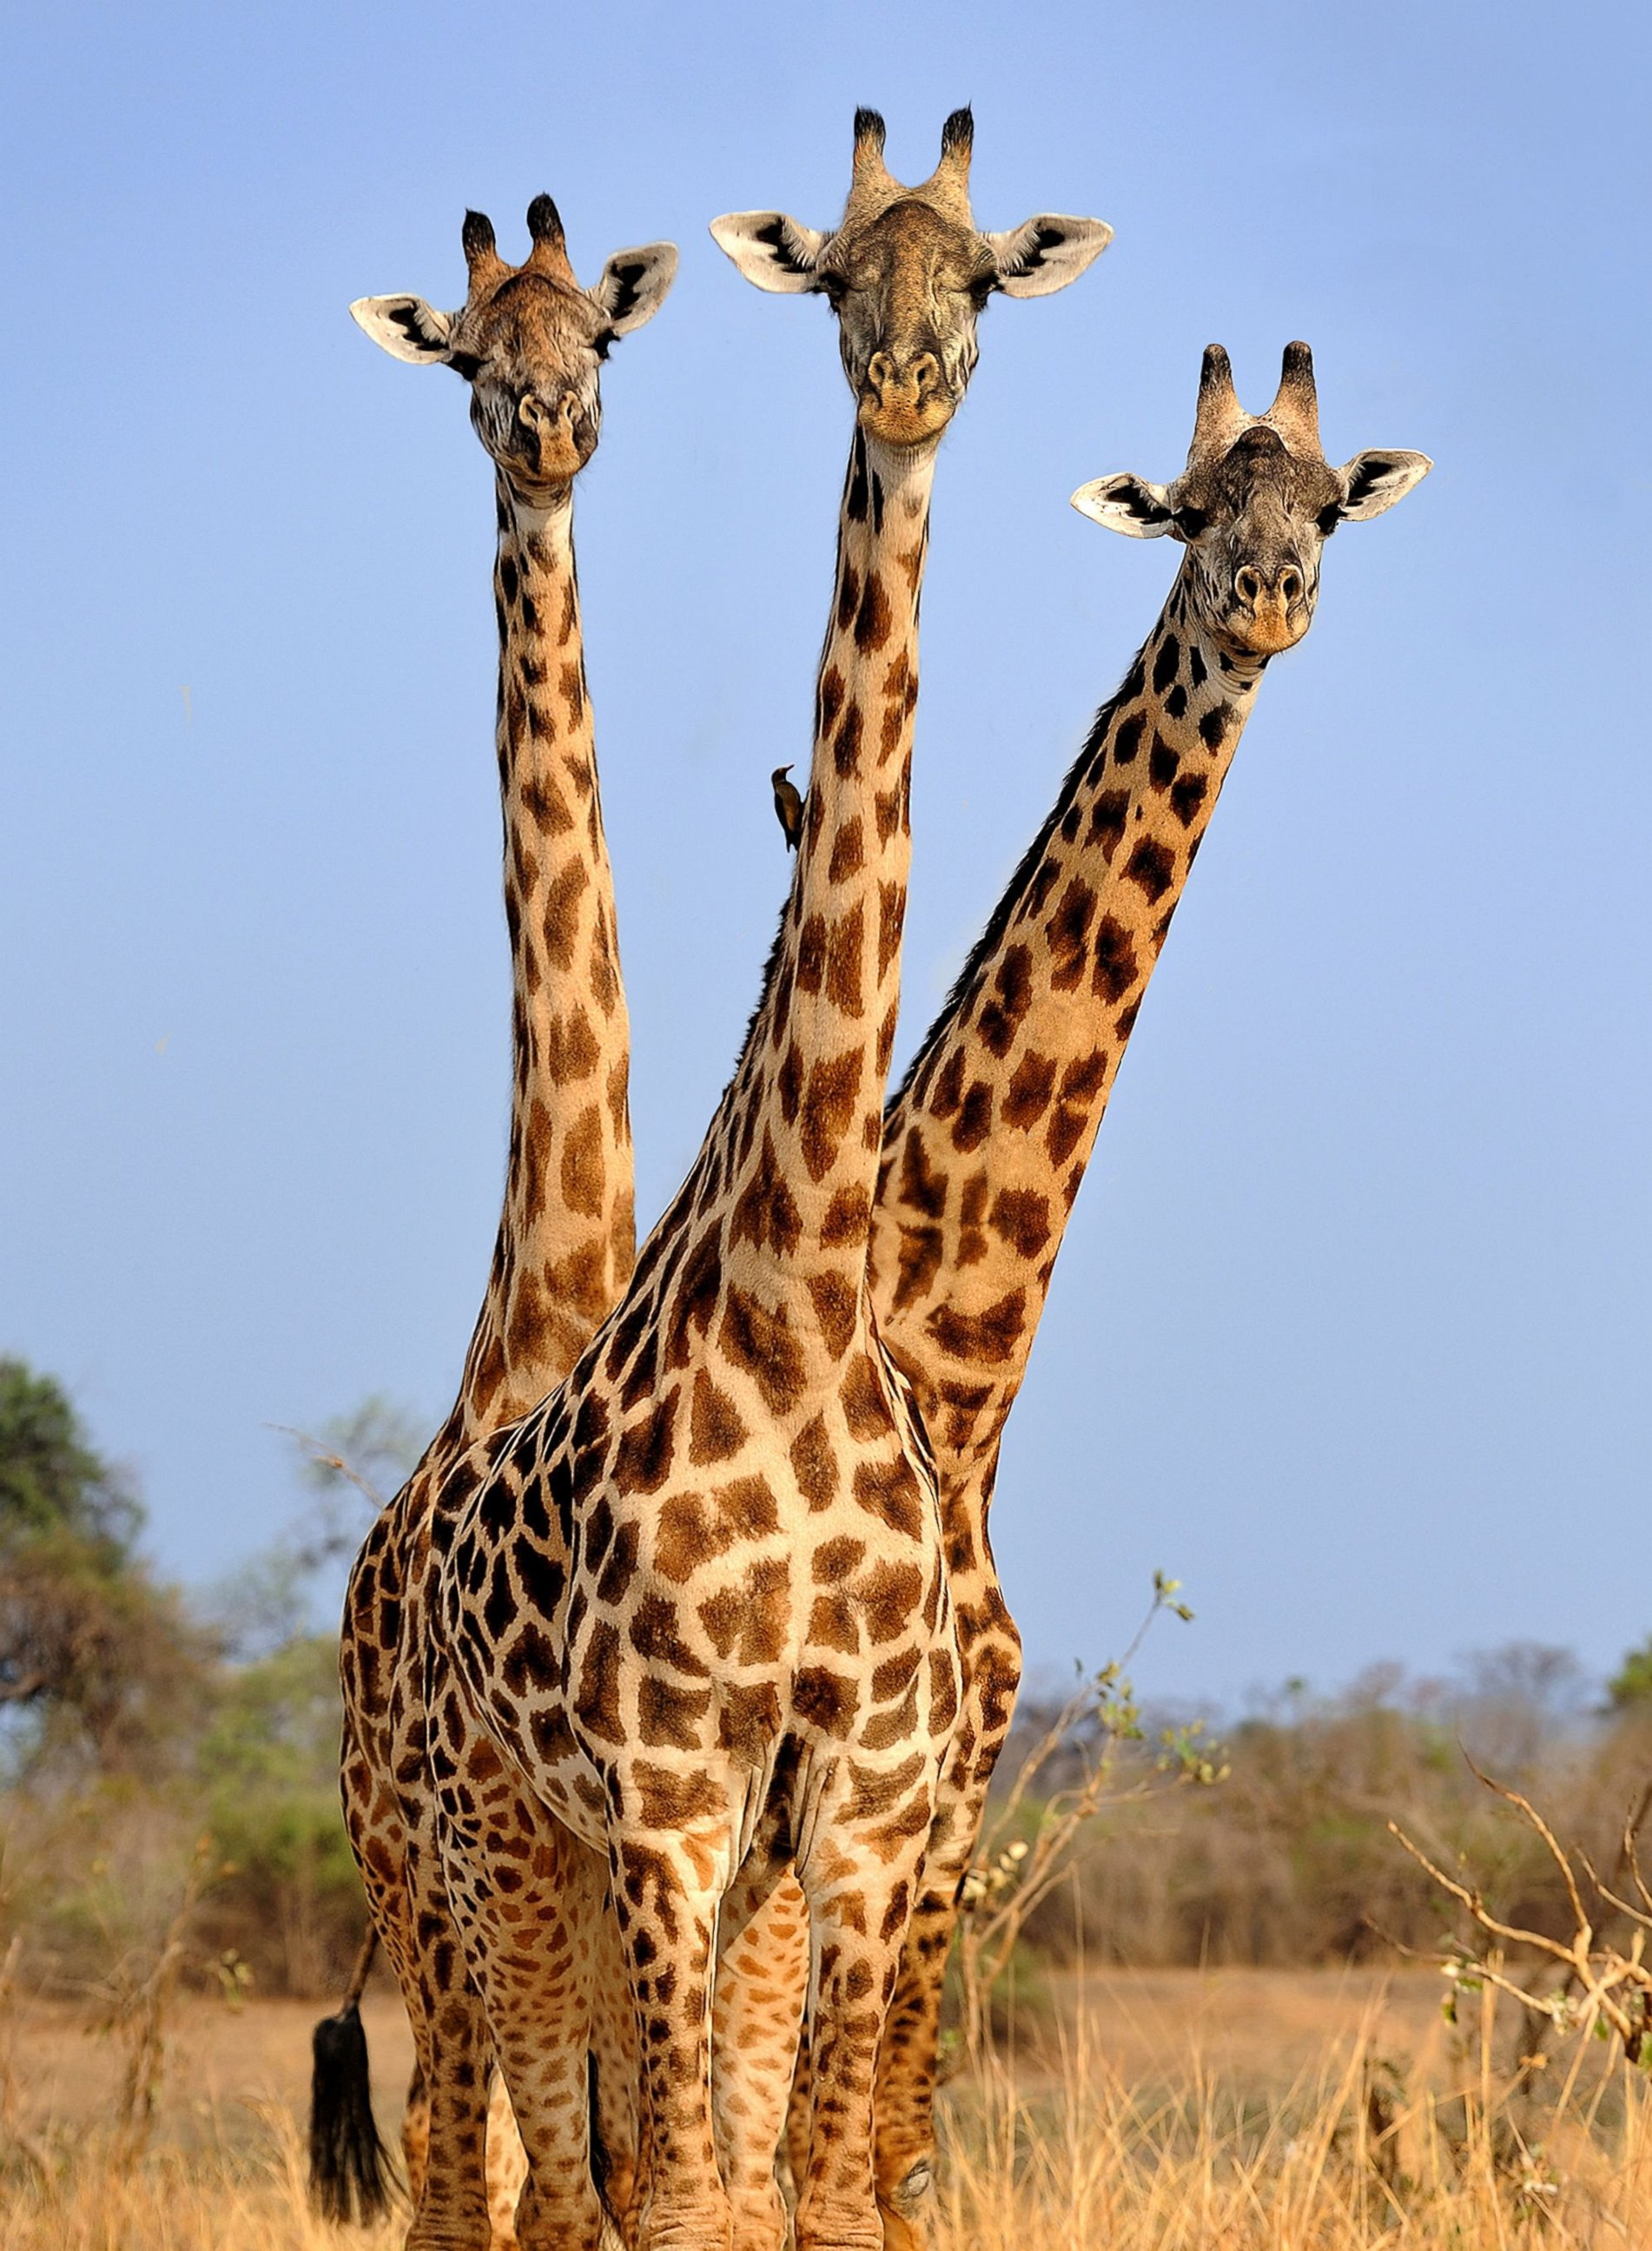 A giraffe appears to have three heads